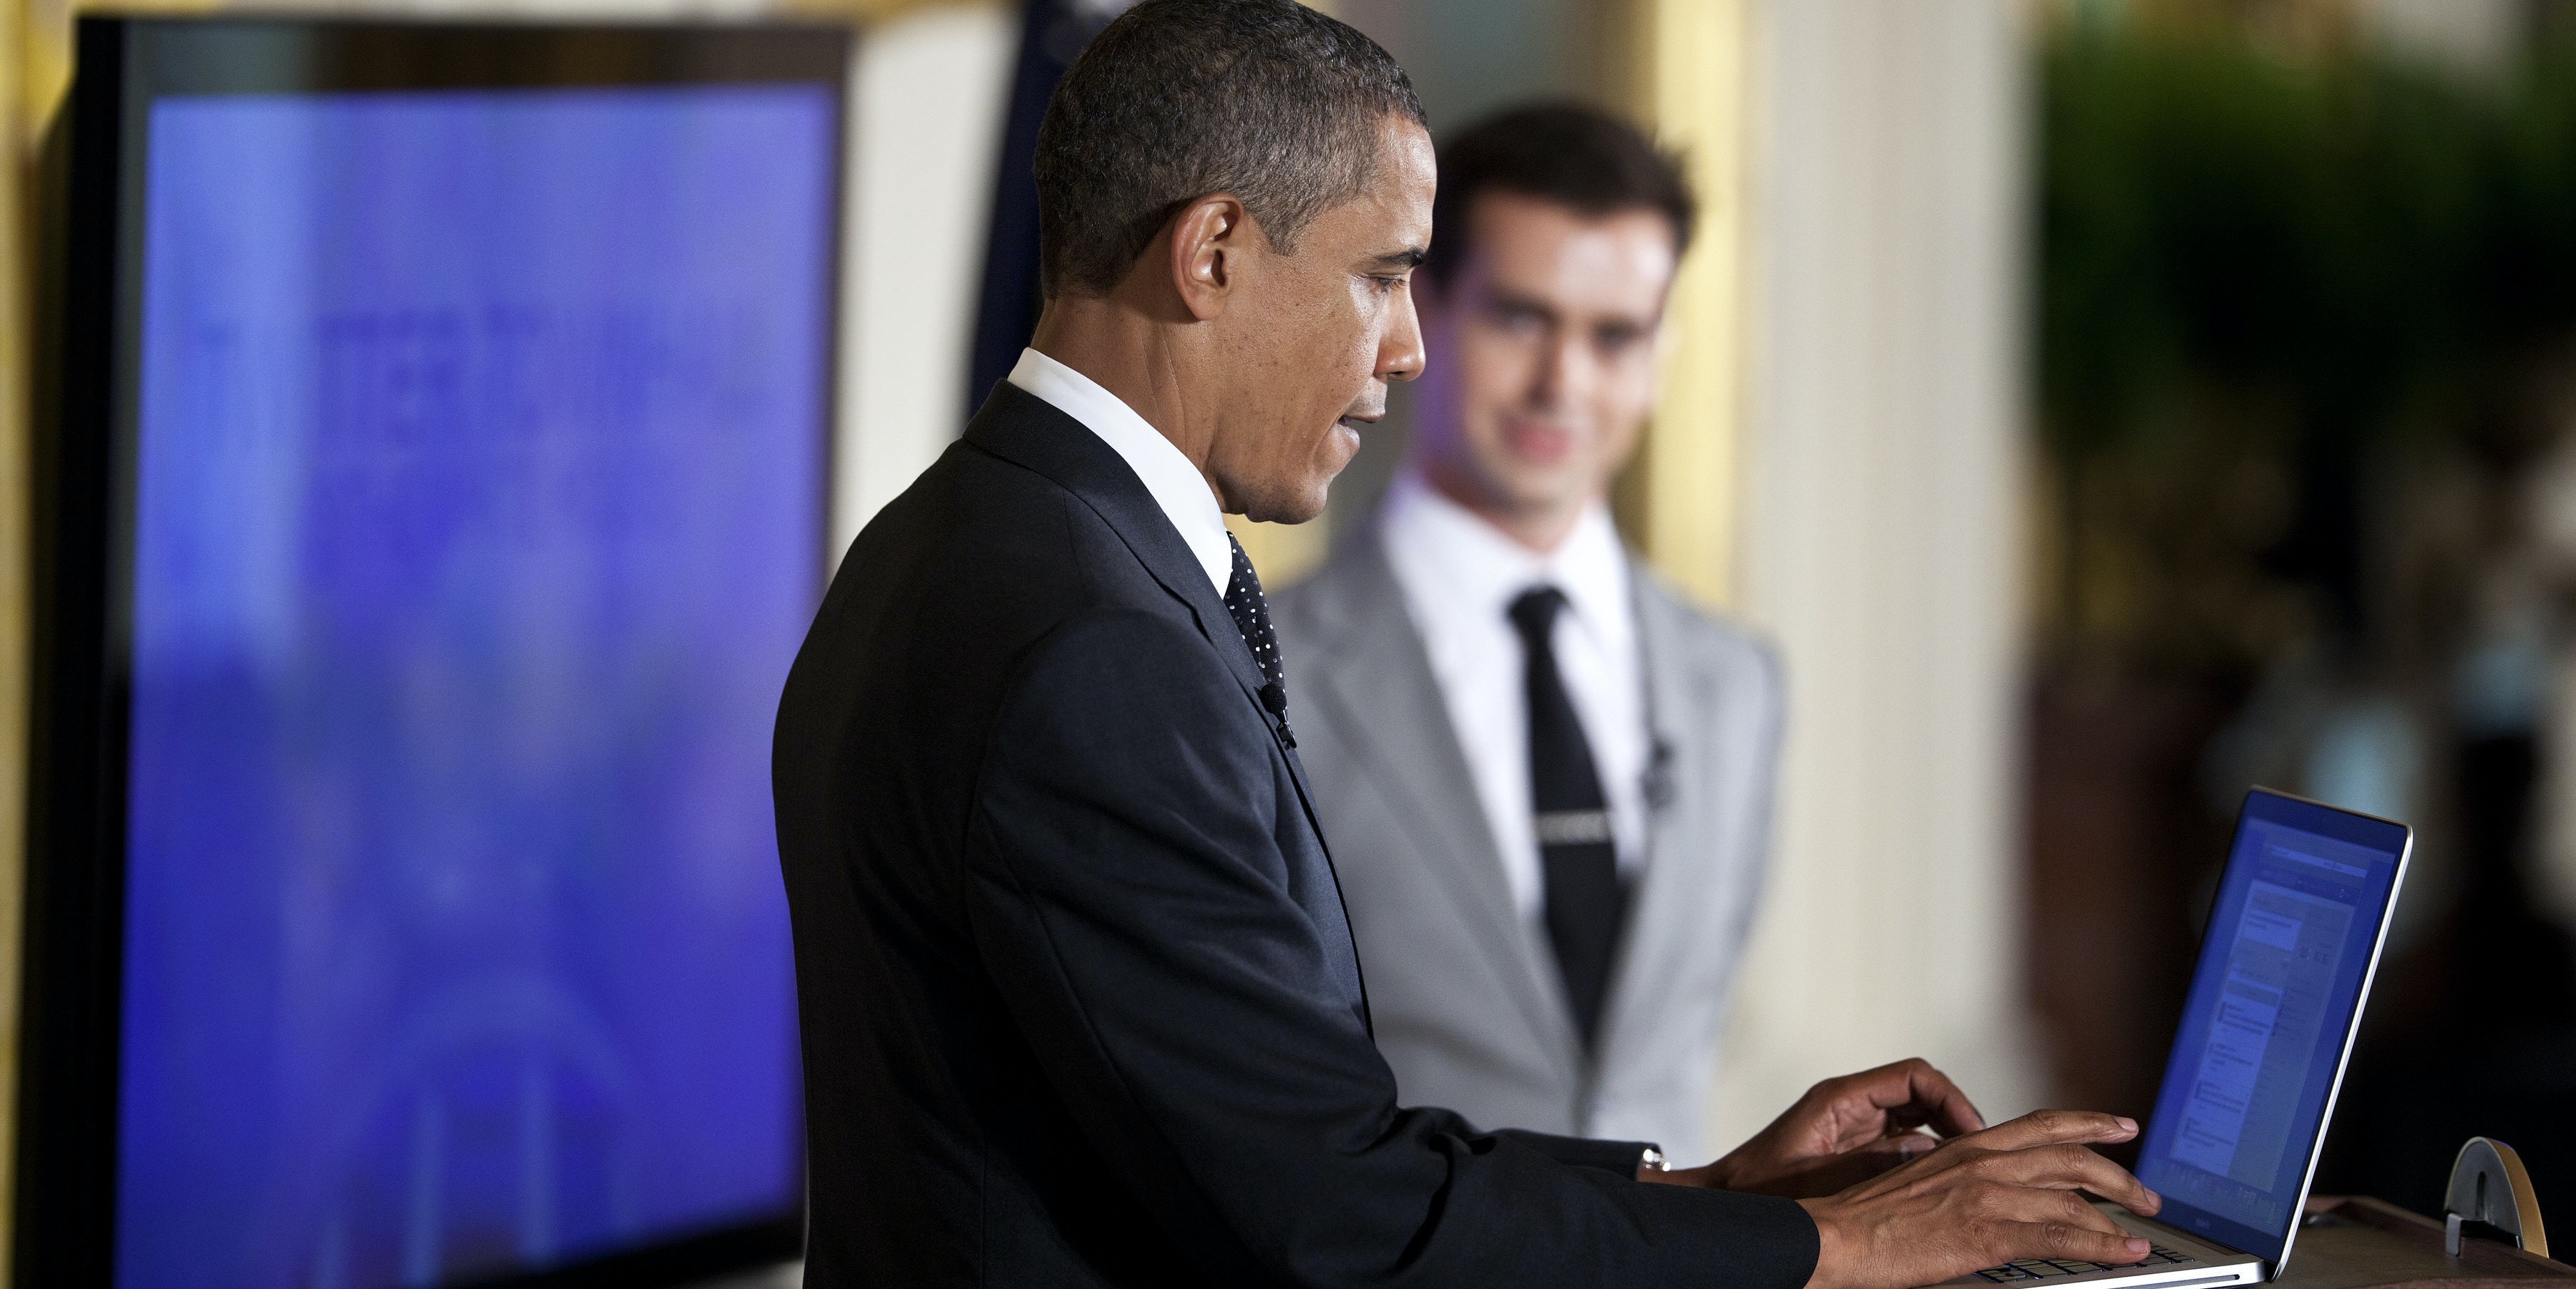 WASHINGTON - JULY 6:  U.S. President Barack Obama posts a Tweet during an online Twitter town hall meeting from the East Room of the White House July 6, 2011 in Washington, DC.  Obama and Twitter co-founder and Executive Chairman Jack Dorsey held the online discussion to speak about the U.S .debt ceiling crisis.  (Photo by Brendan Smialowski/Getty Images)